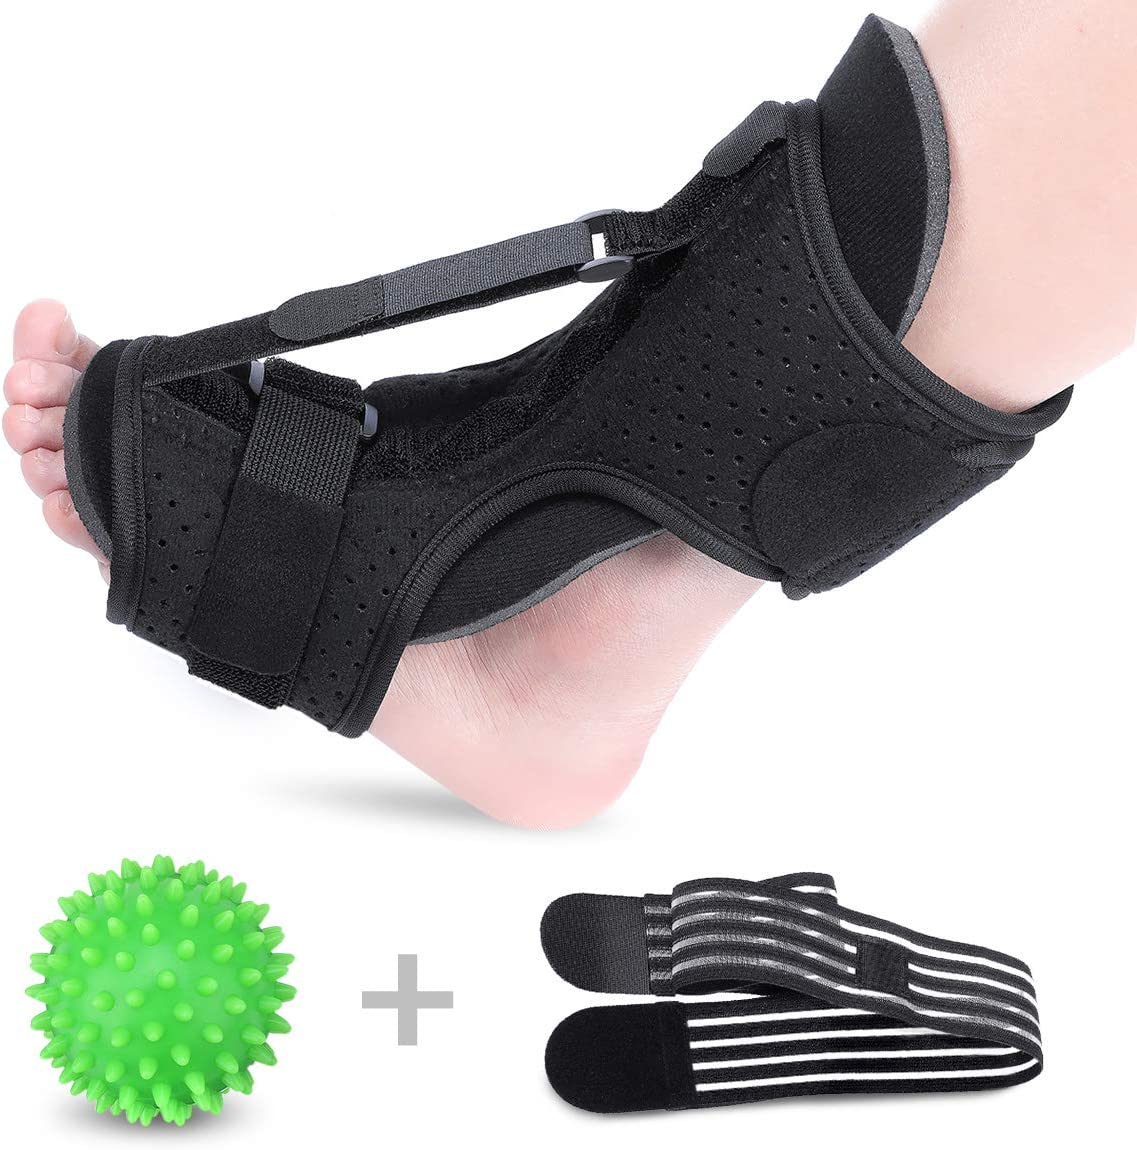 Plantar Fasciitis Night Splint Drop Foot Orthotic Brace, Improved Dorsal Night Splint for Effective Relief from Plantar Fasciitis Achilles Tendoniti